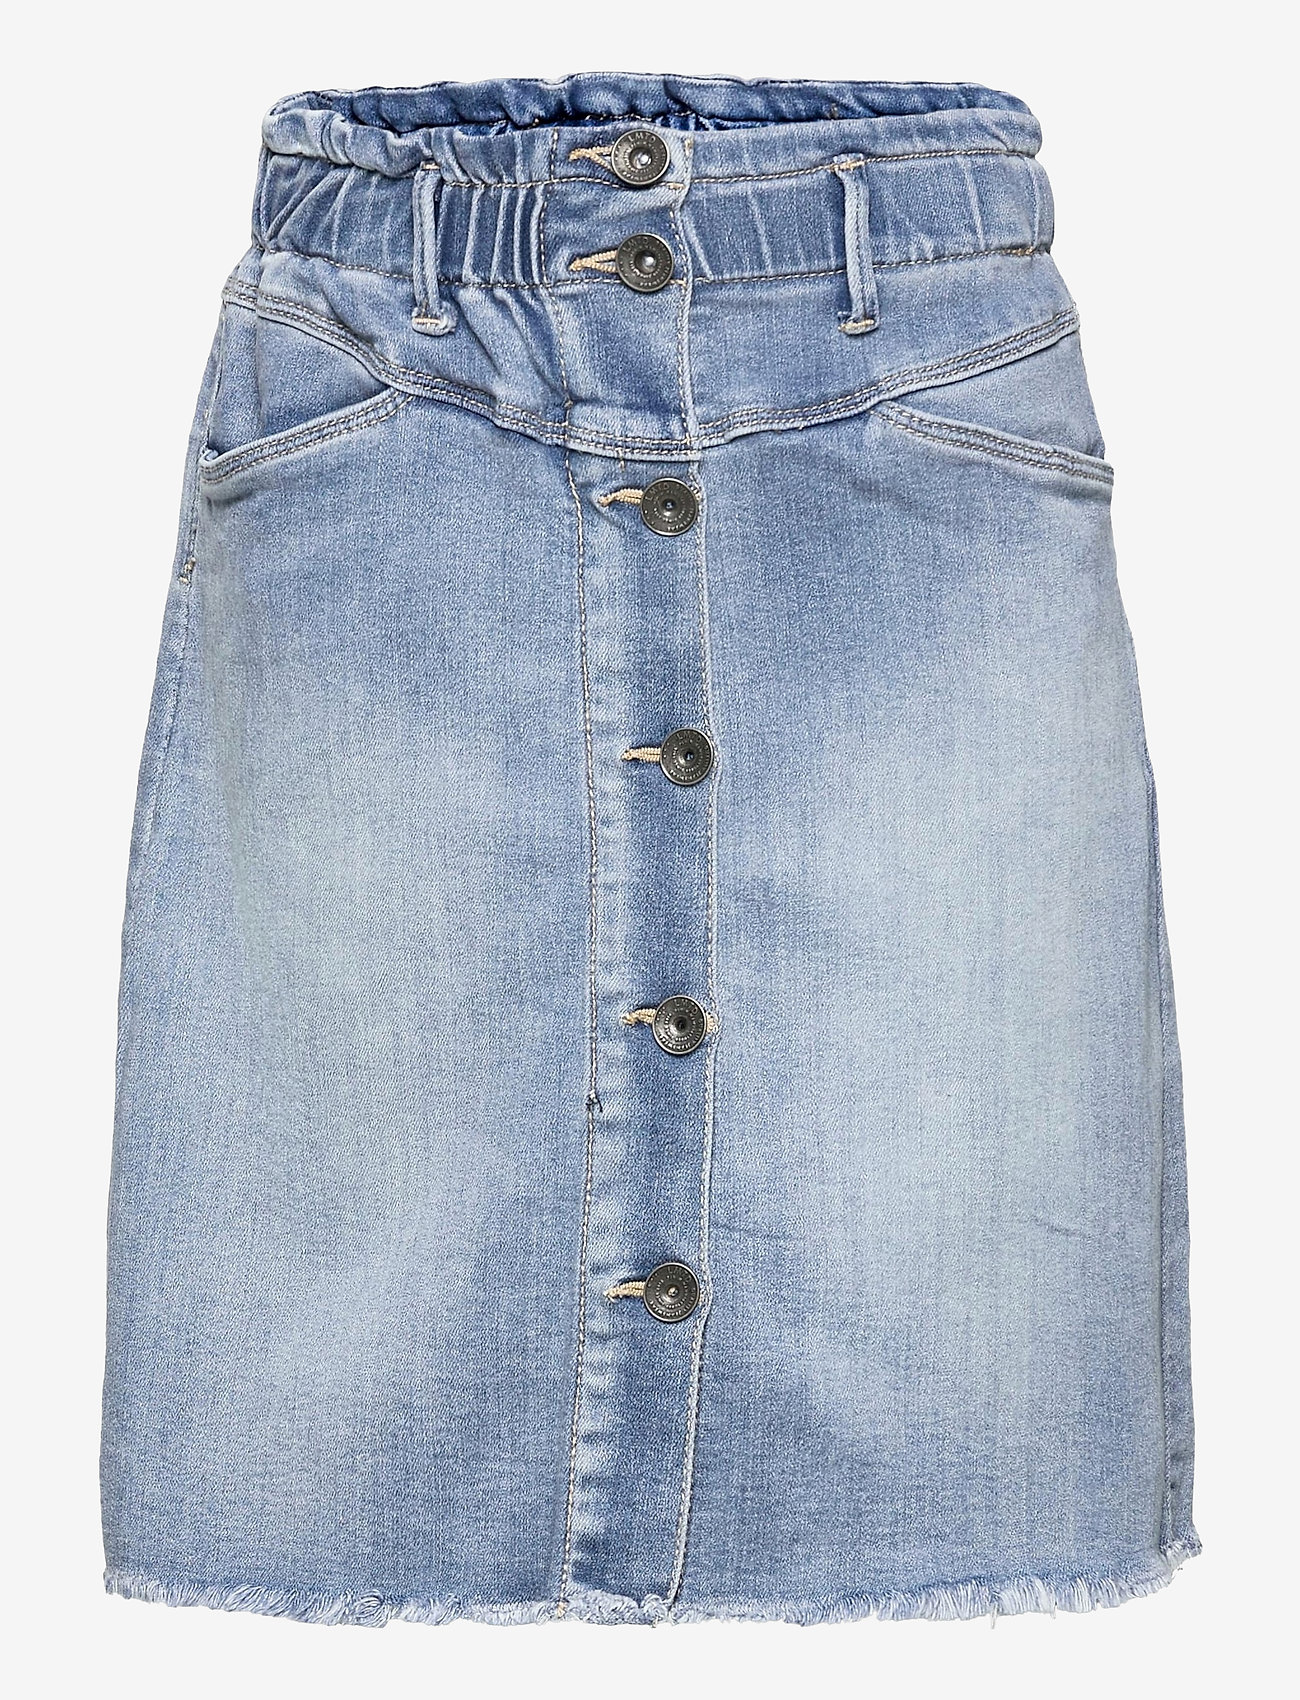 LMTD - NLFRAVEN DNMATASPERS 1467 HW A SKIRT - röcke - light blue denim - 0